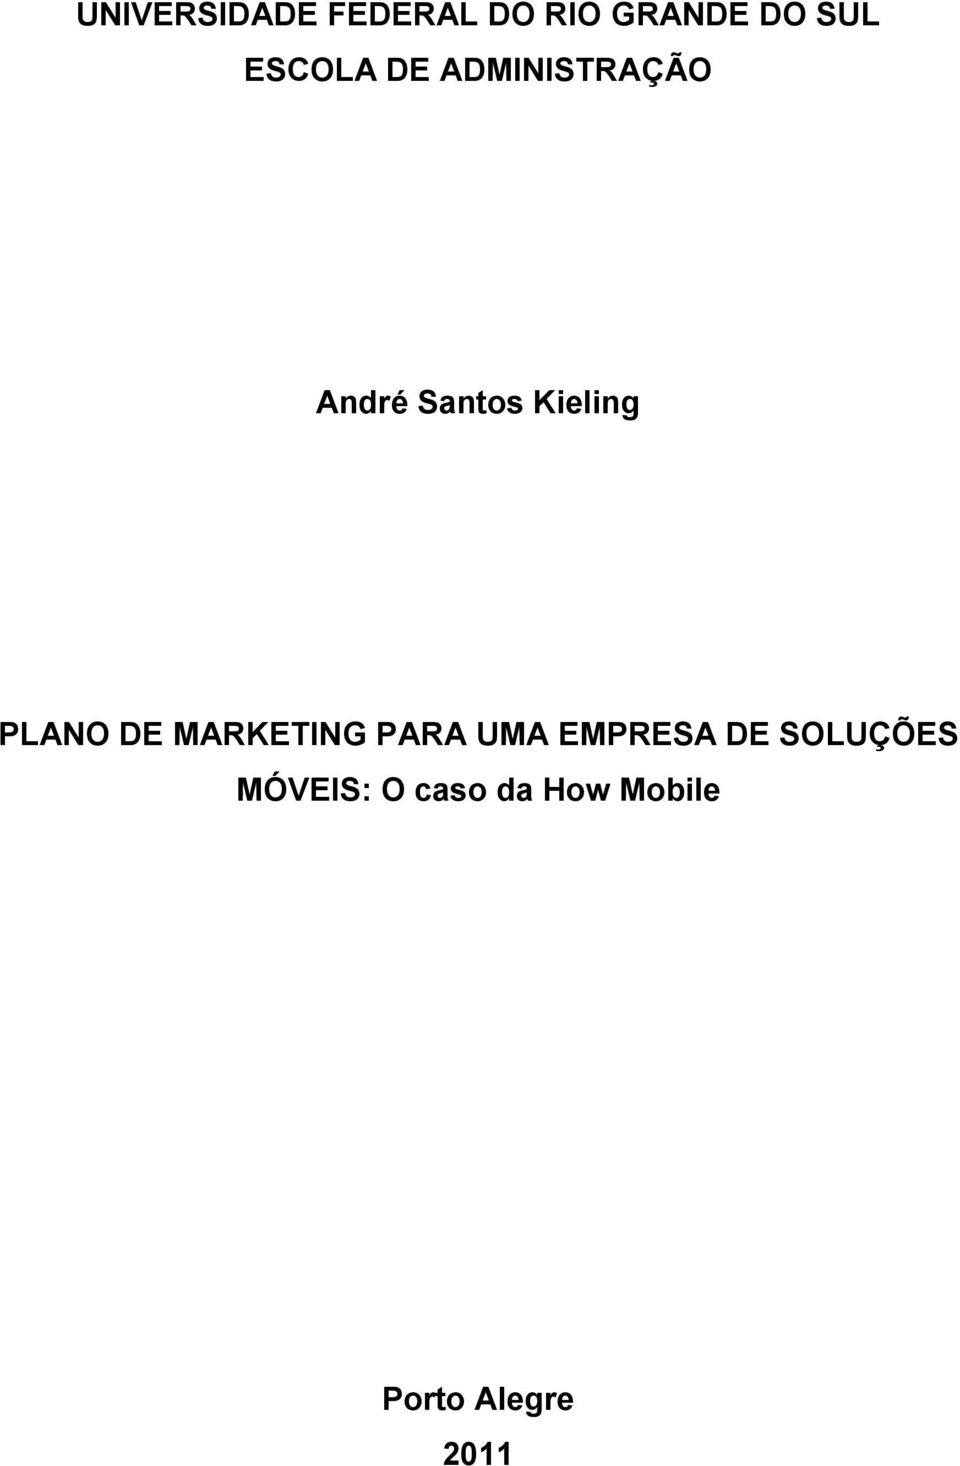 PLANO DE MARKETING PARA UMA EMPRESA DE